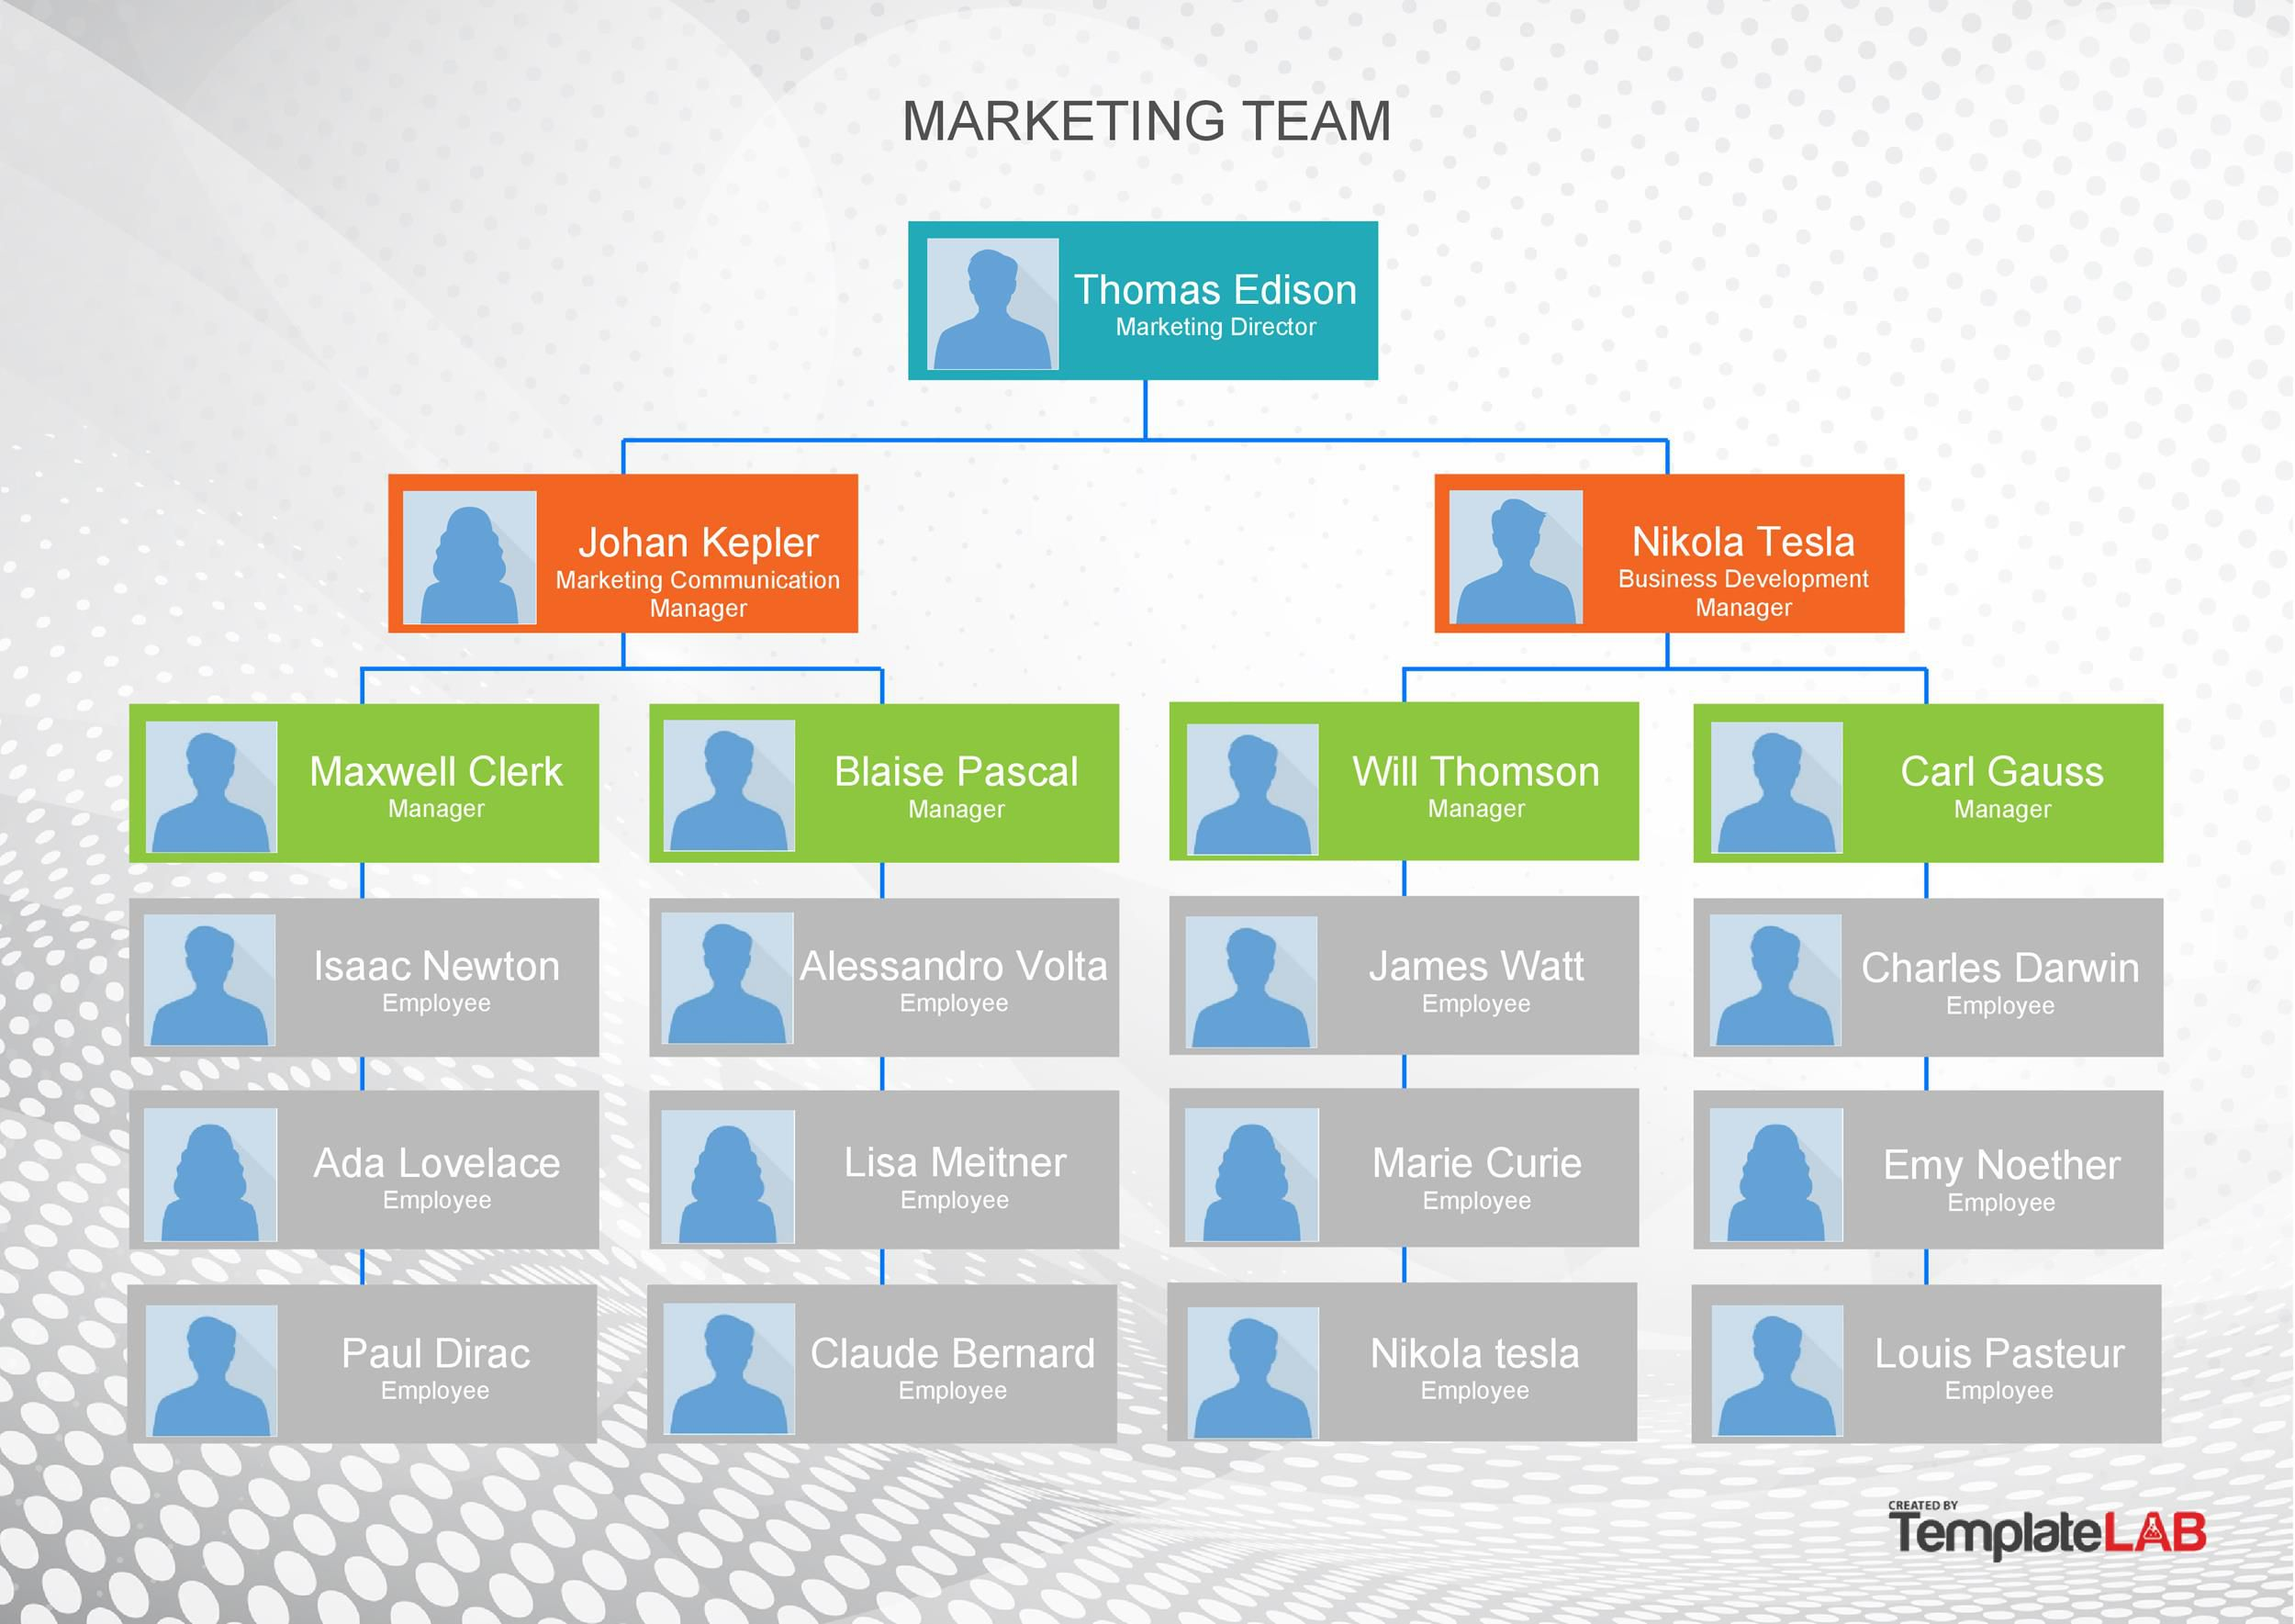 003 Exceptional Hierarchy Organizational Chart Template Word High Def  Hierarchical Organization -Full